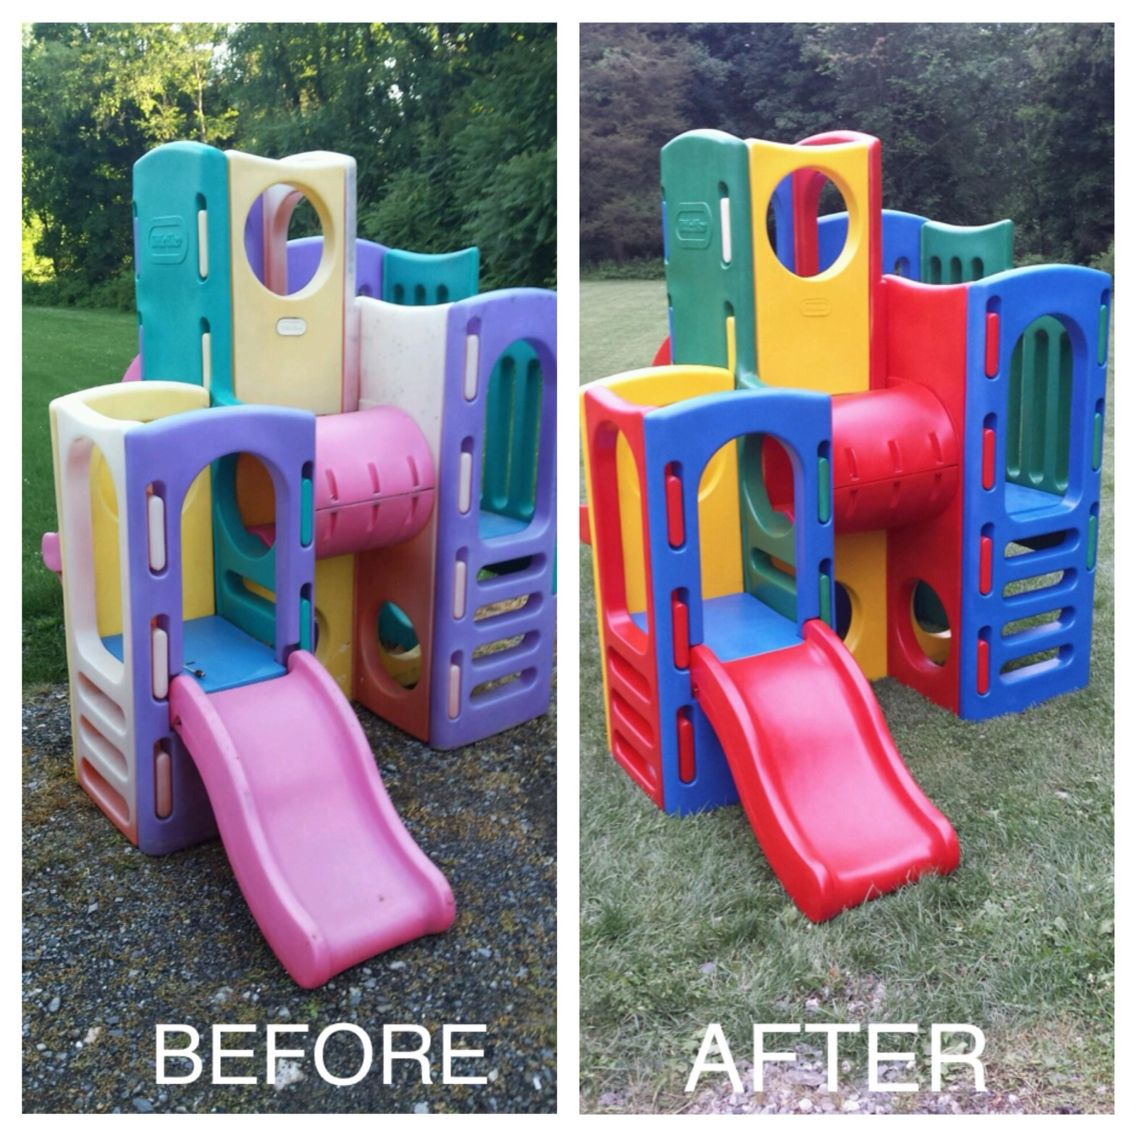 Spray Painted Little Tikes Tower 75 Tower Craigslist 100 Fusion Gloss Spray Paint 3 Hours L Diy Kids Playground Little Tikes Playground Backyard For Kids